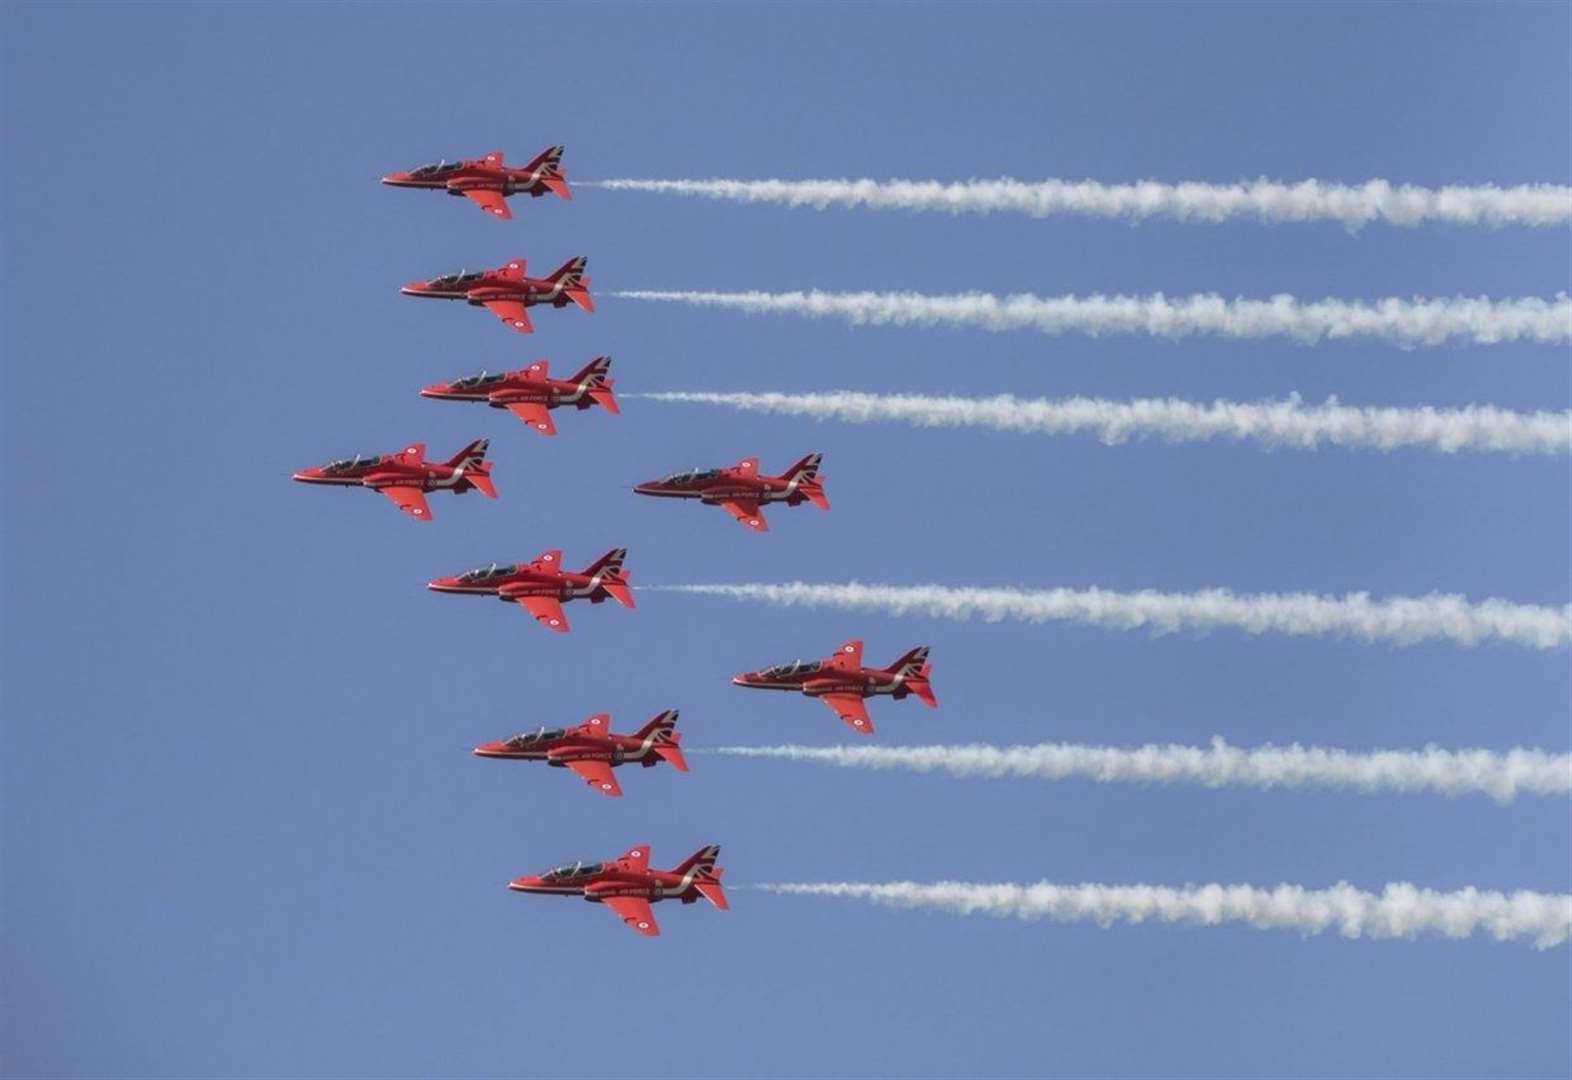 Iconic Red Arrows aerobatic display team to return to Duxford before American trip